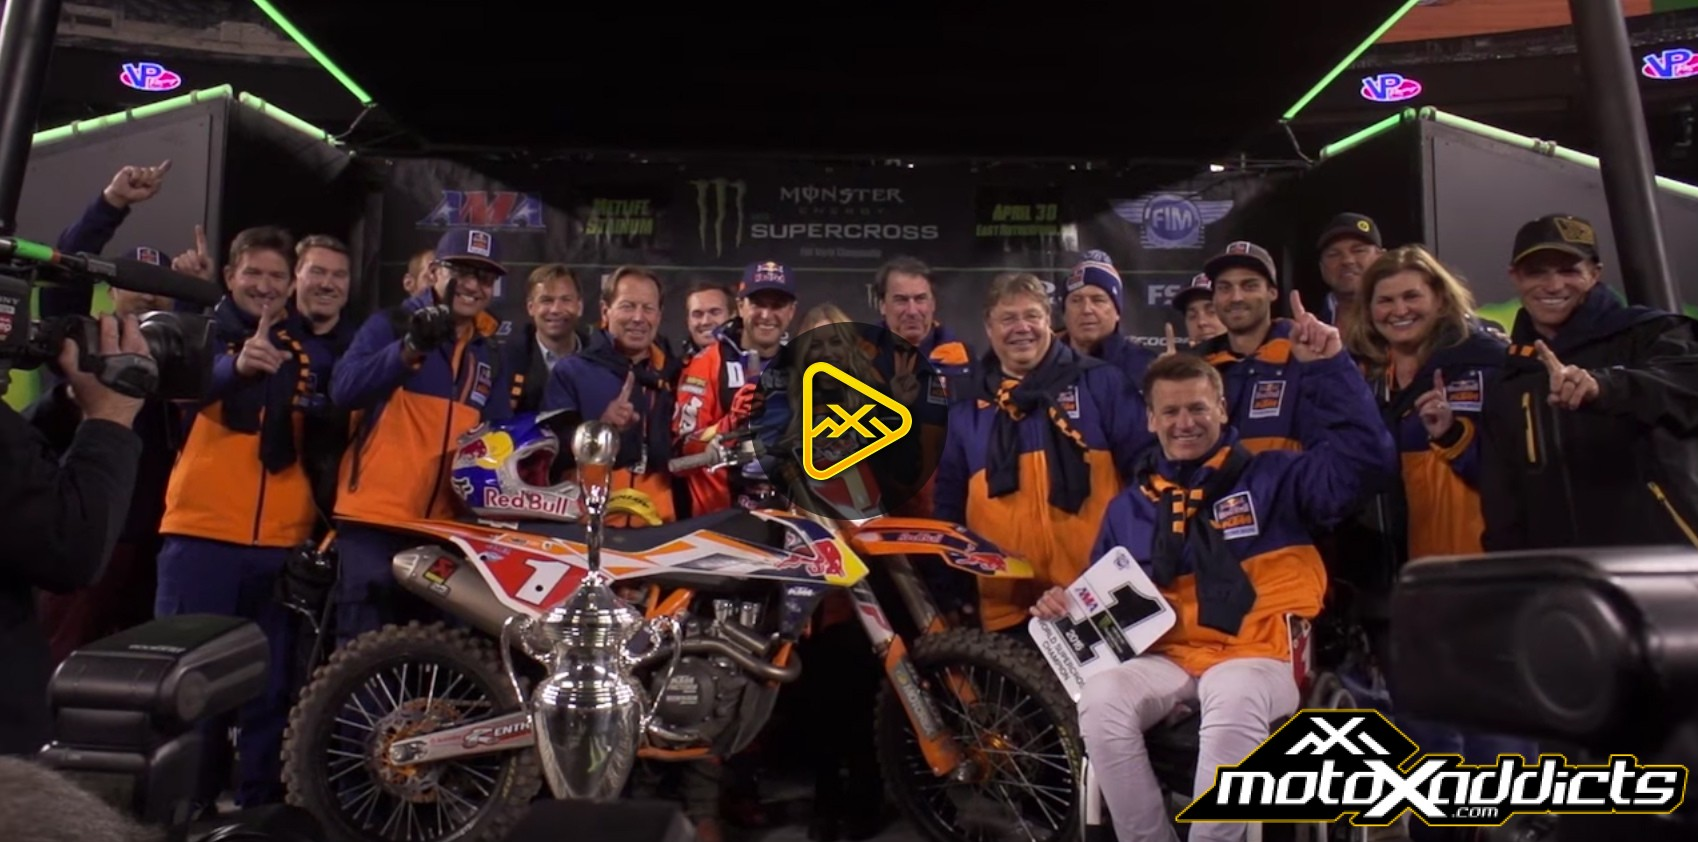 Chasing the Dream – Xtra – Ryan Dungey 2016 Championship